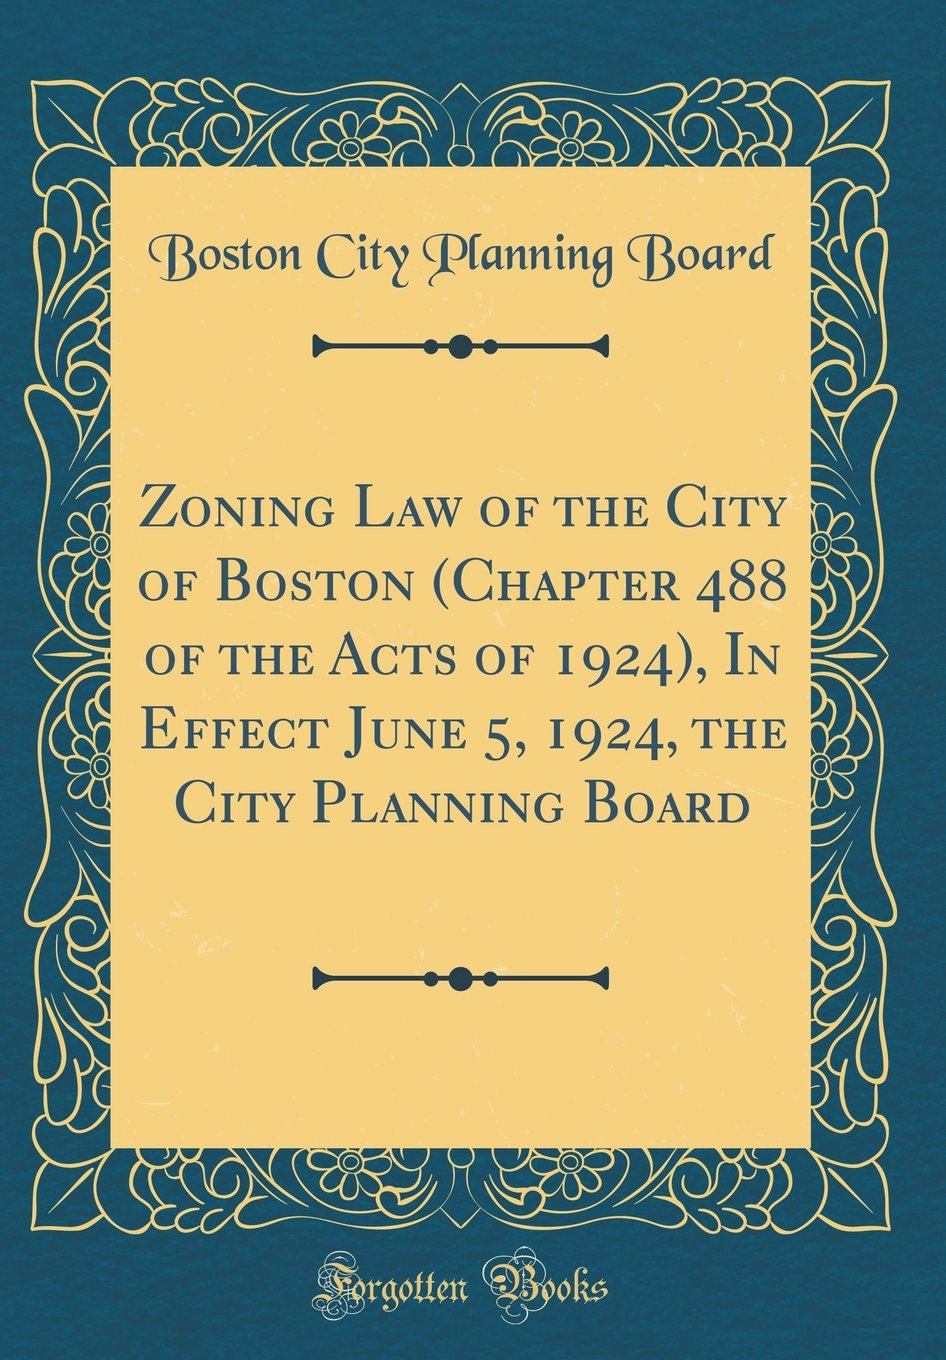 Download Zoning Law of the City of Boston (Chapter 488 of the Acts of 1924), in Effect June 5, 1924, the City Planning Board (Classic Reprint) PDF